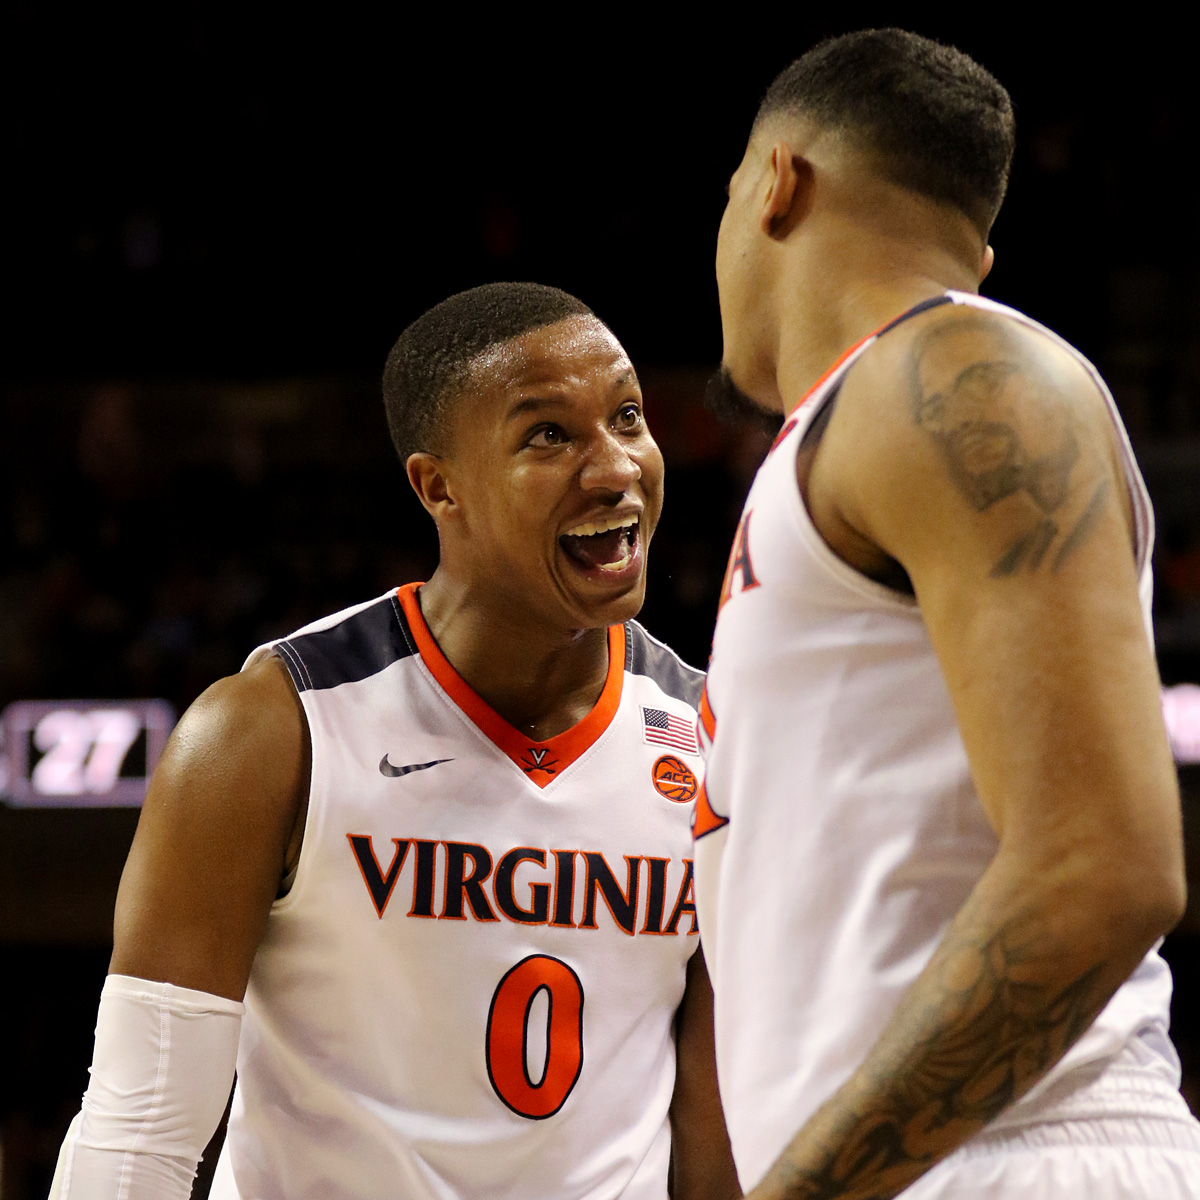 Virginia is 11-0 in the ACC this season.